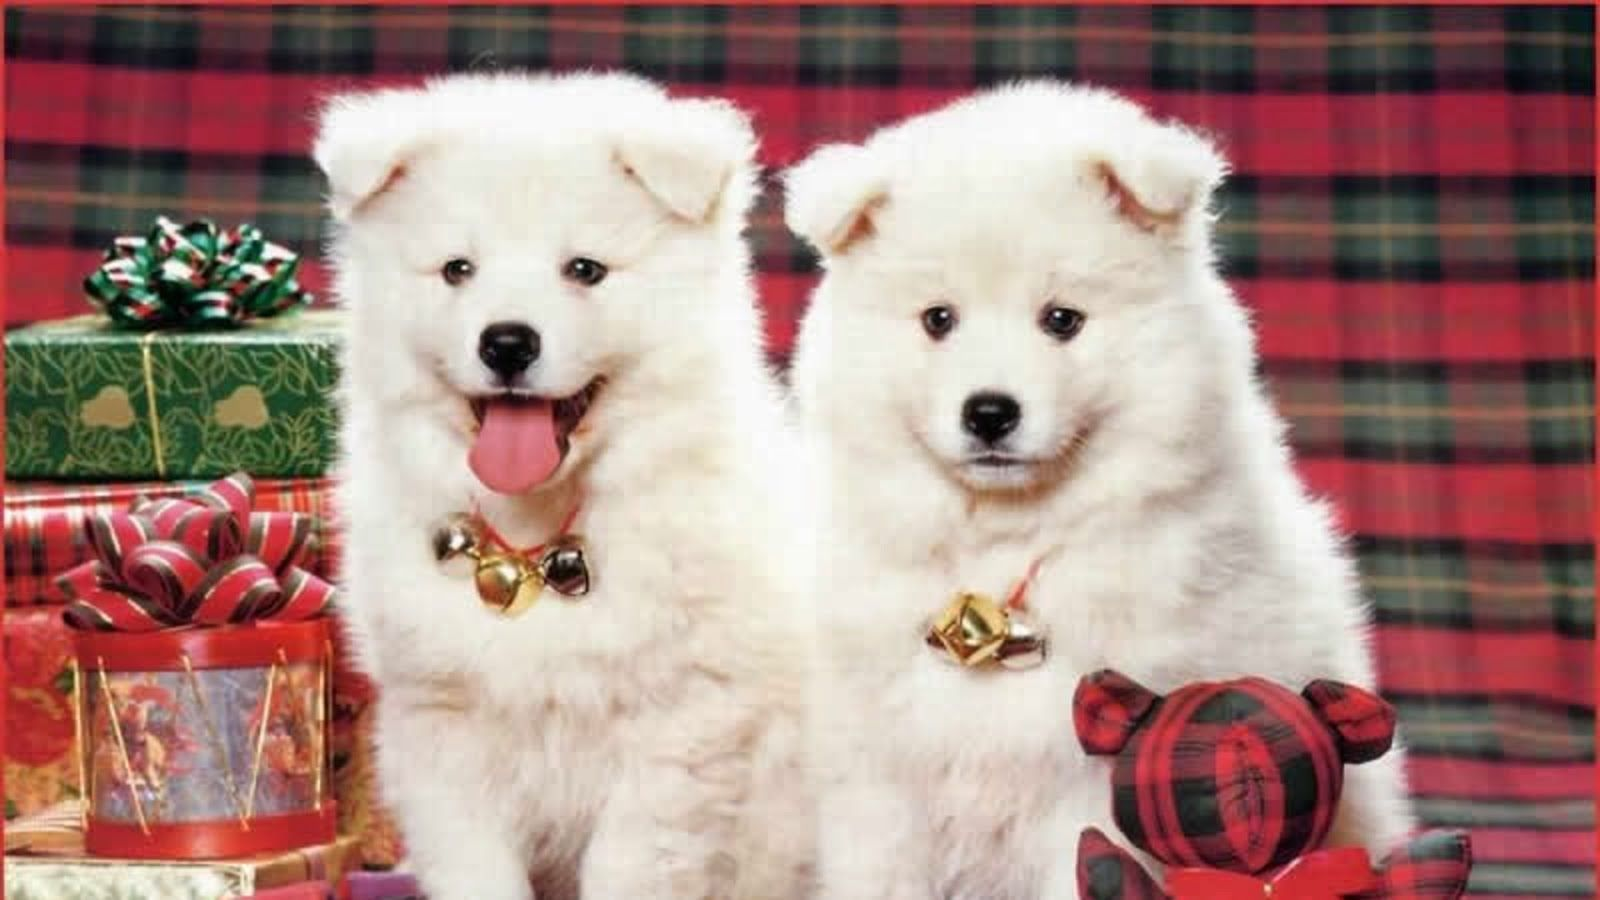 Beautiful dogs images hd wallpapers for desktop HD 1600x900